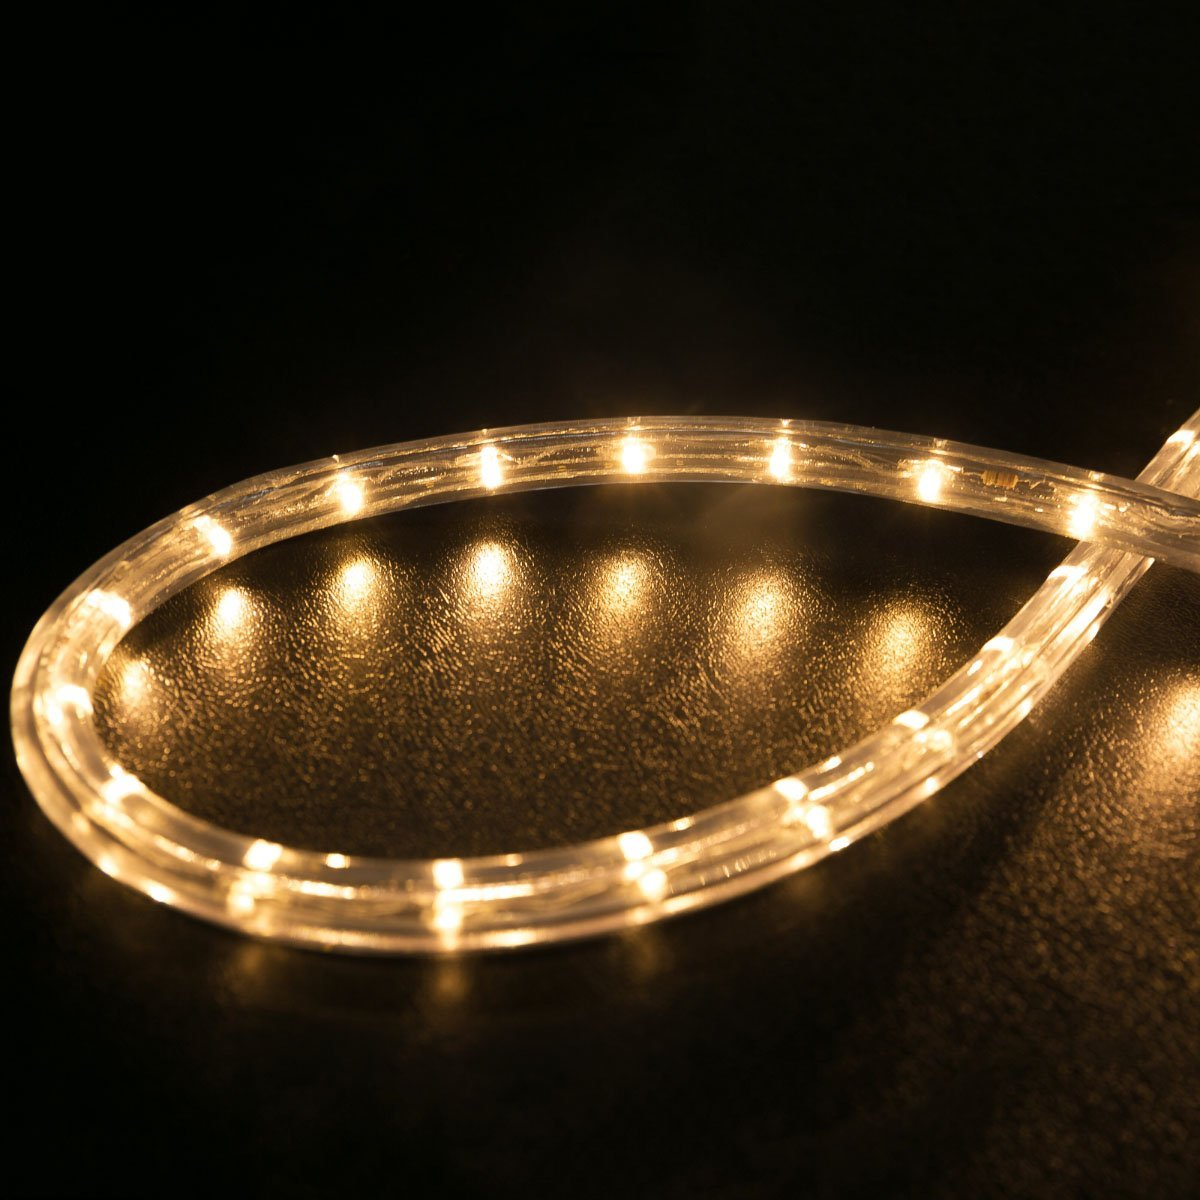 WYZworks 100 feet 1/2'' Thick WARM WHITE Pre-Assembled LED Rope Lights with 10', 25', 50', 150' option - Christmas Holiday Decoration Lighting | UL Certified by WYZworks (Image #5)